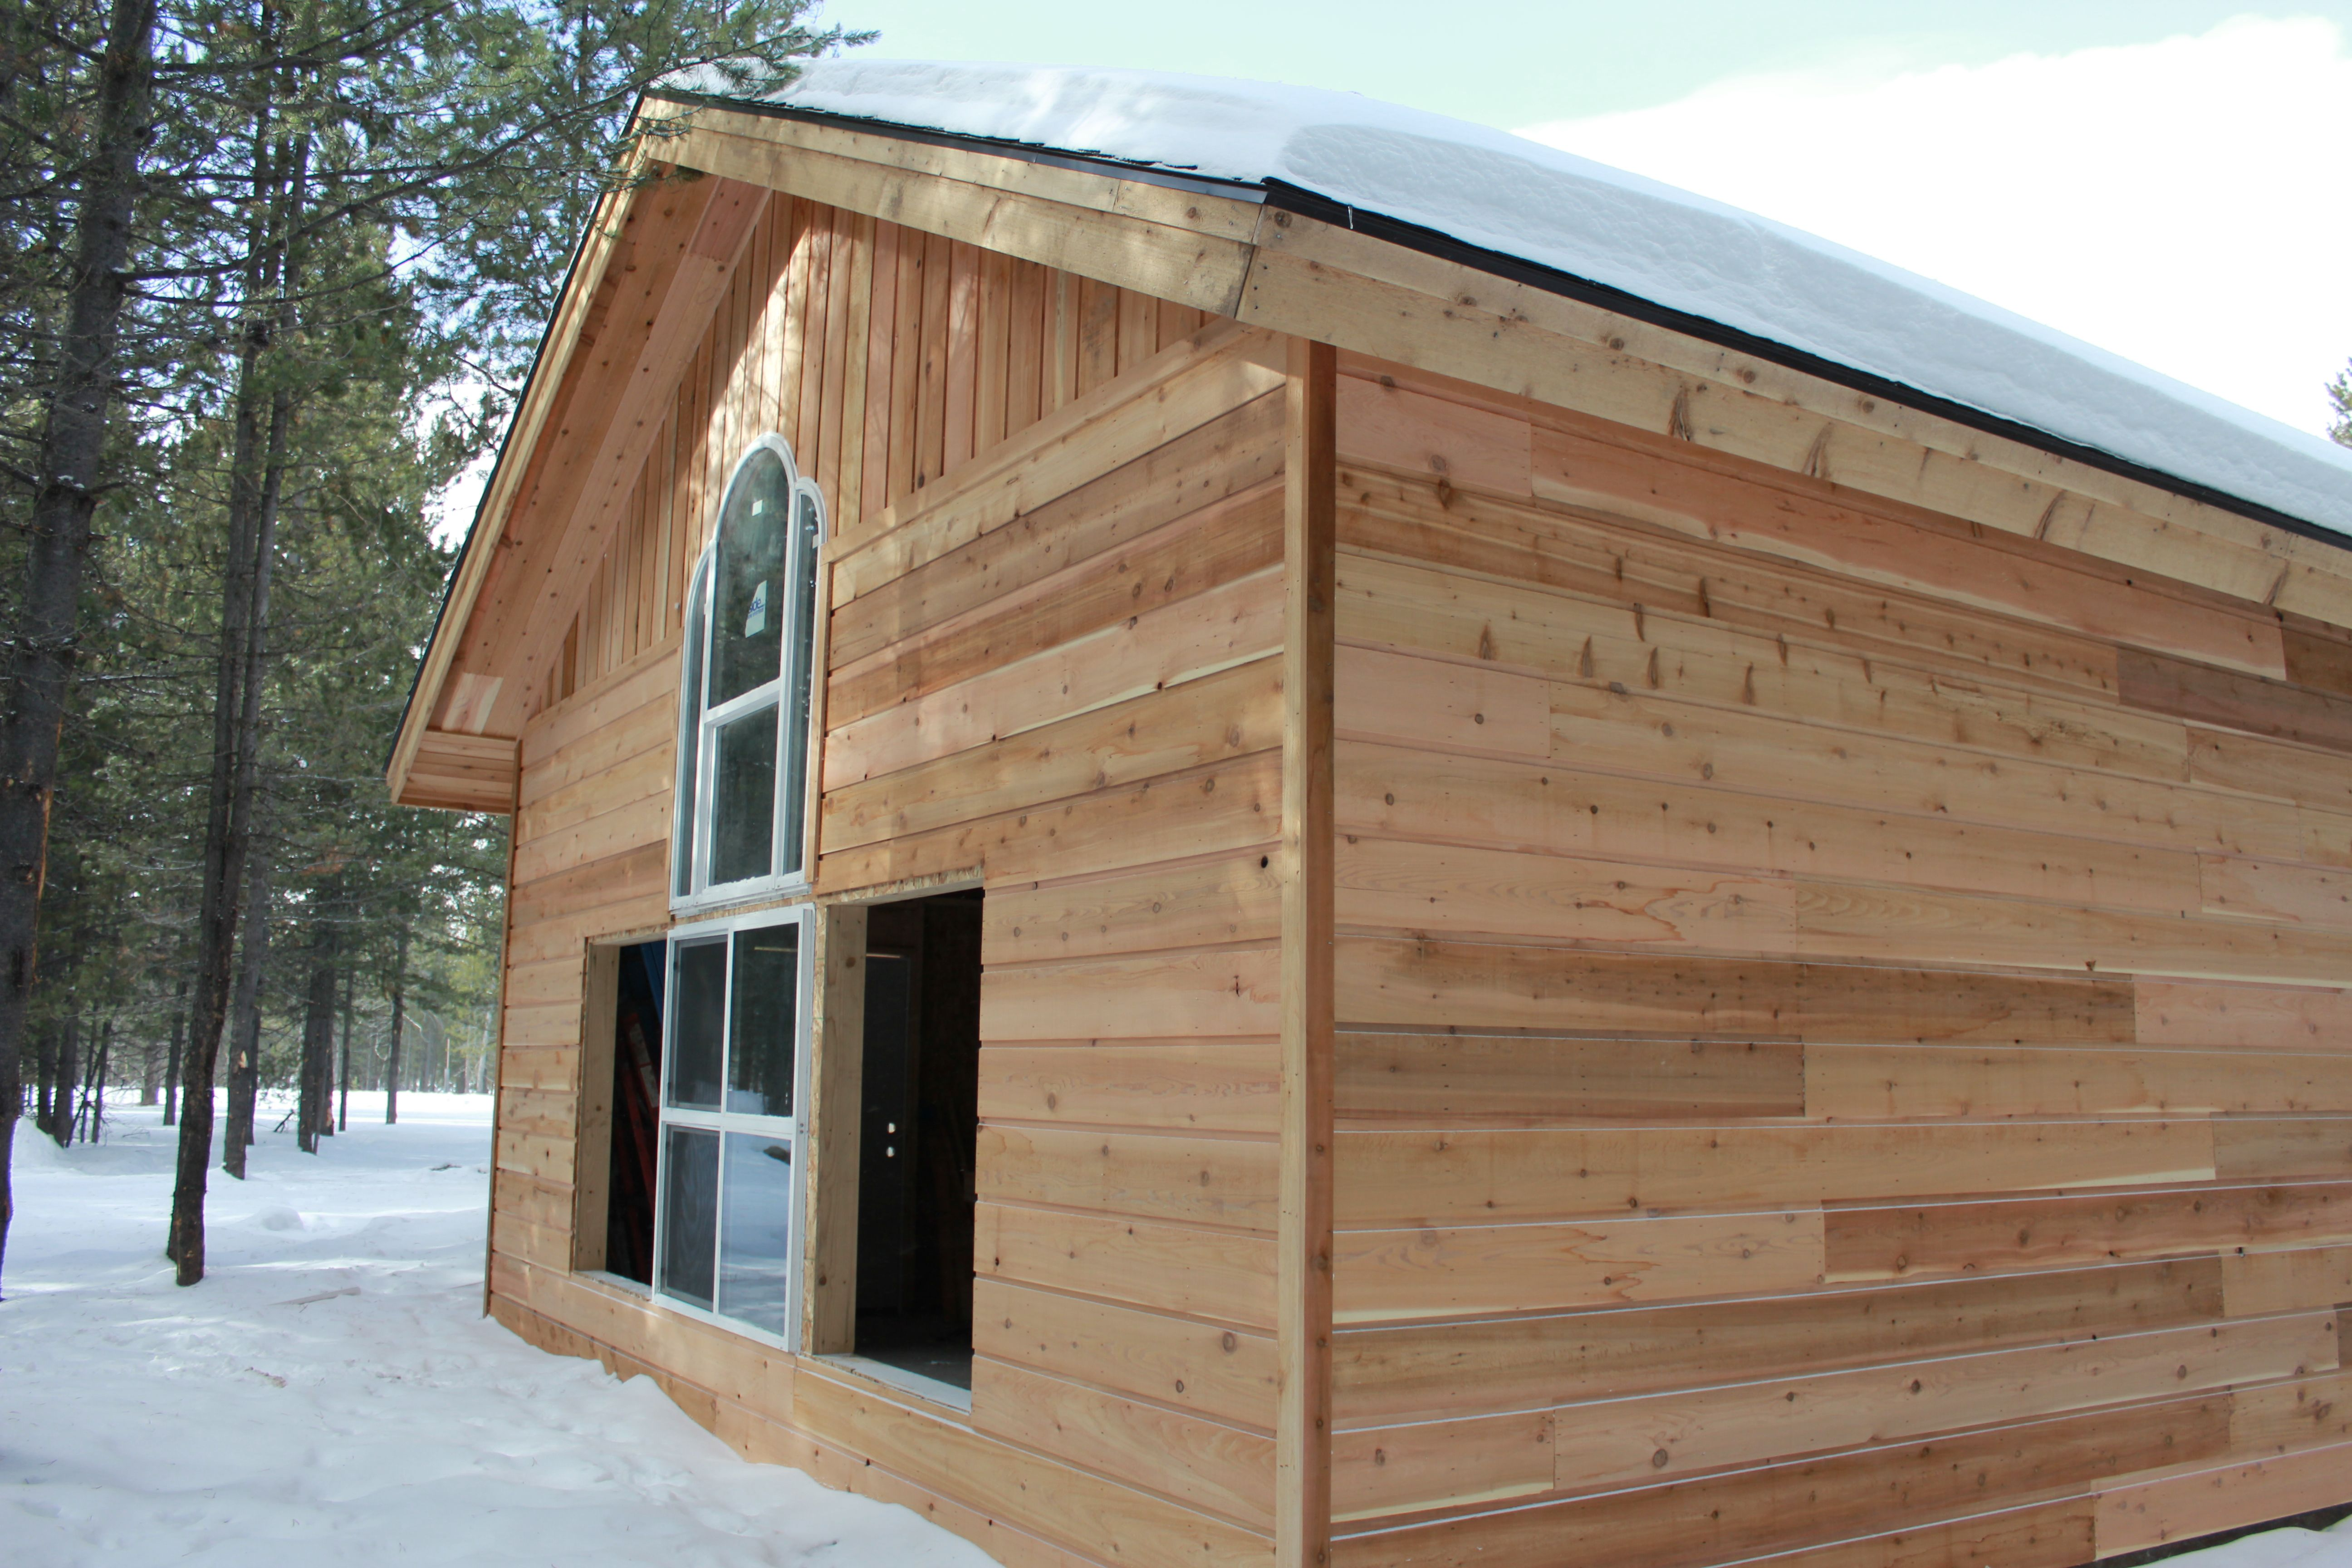 3x8 log siding hand hewn pine - This Is A 1x10 Channel Rustic Cedar Siding In This Project You Can See How